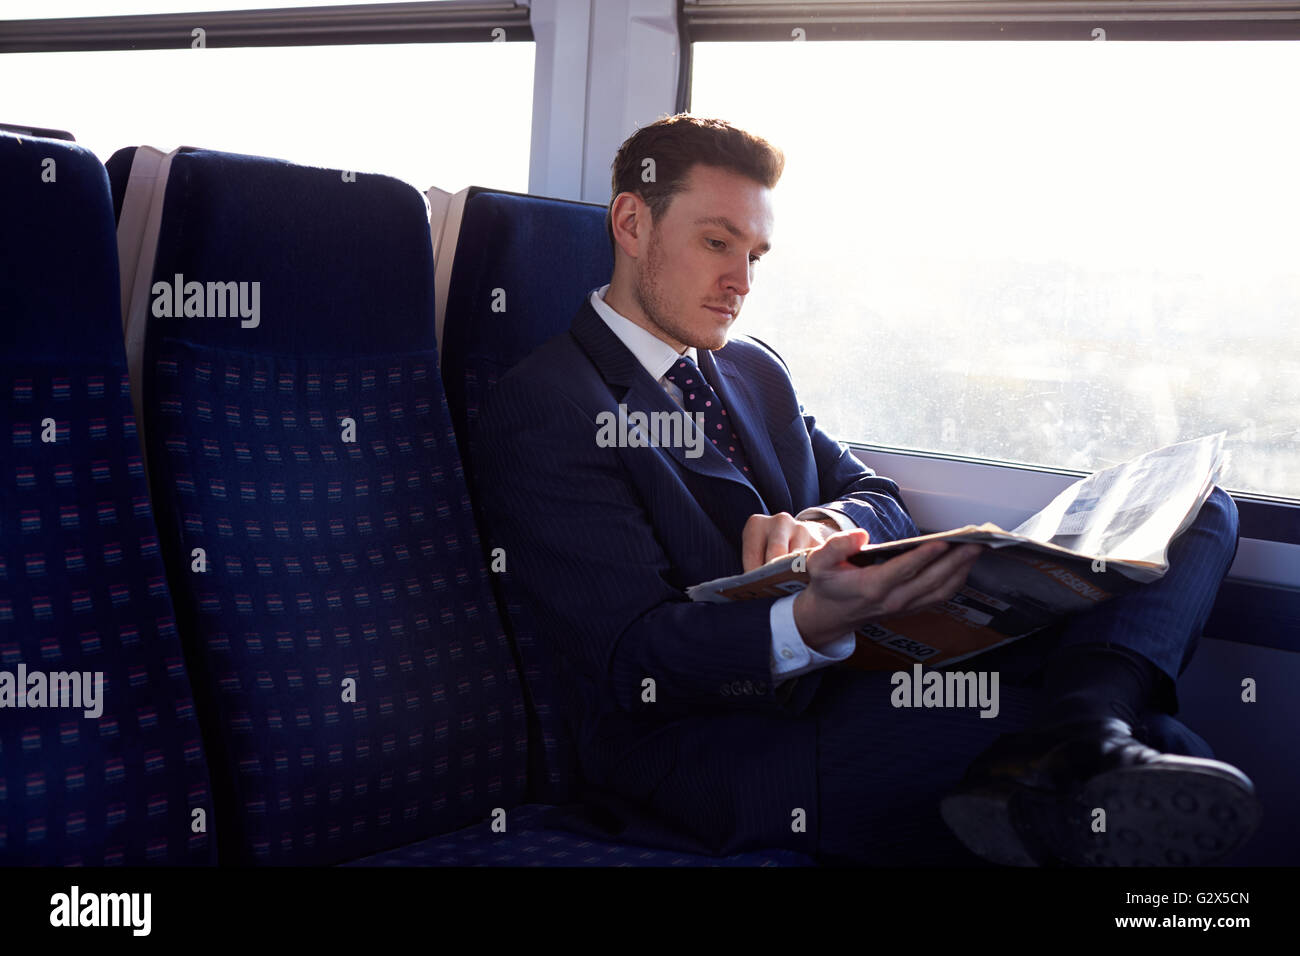 Businessman Commuting To Work Reading Newspaper On Train - Stock Image